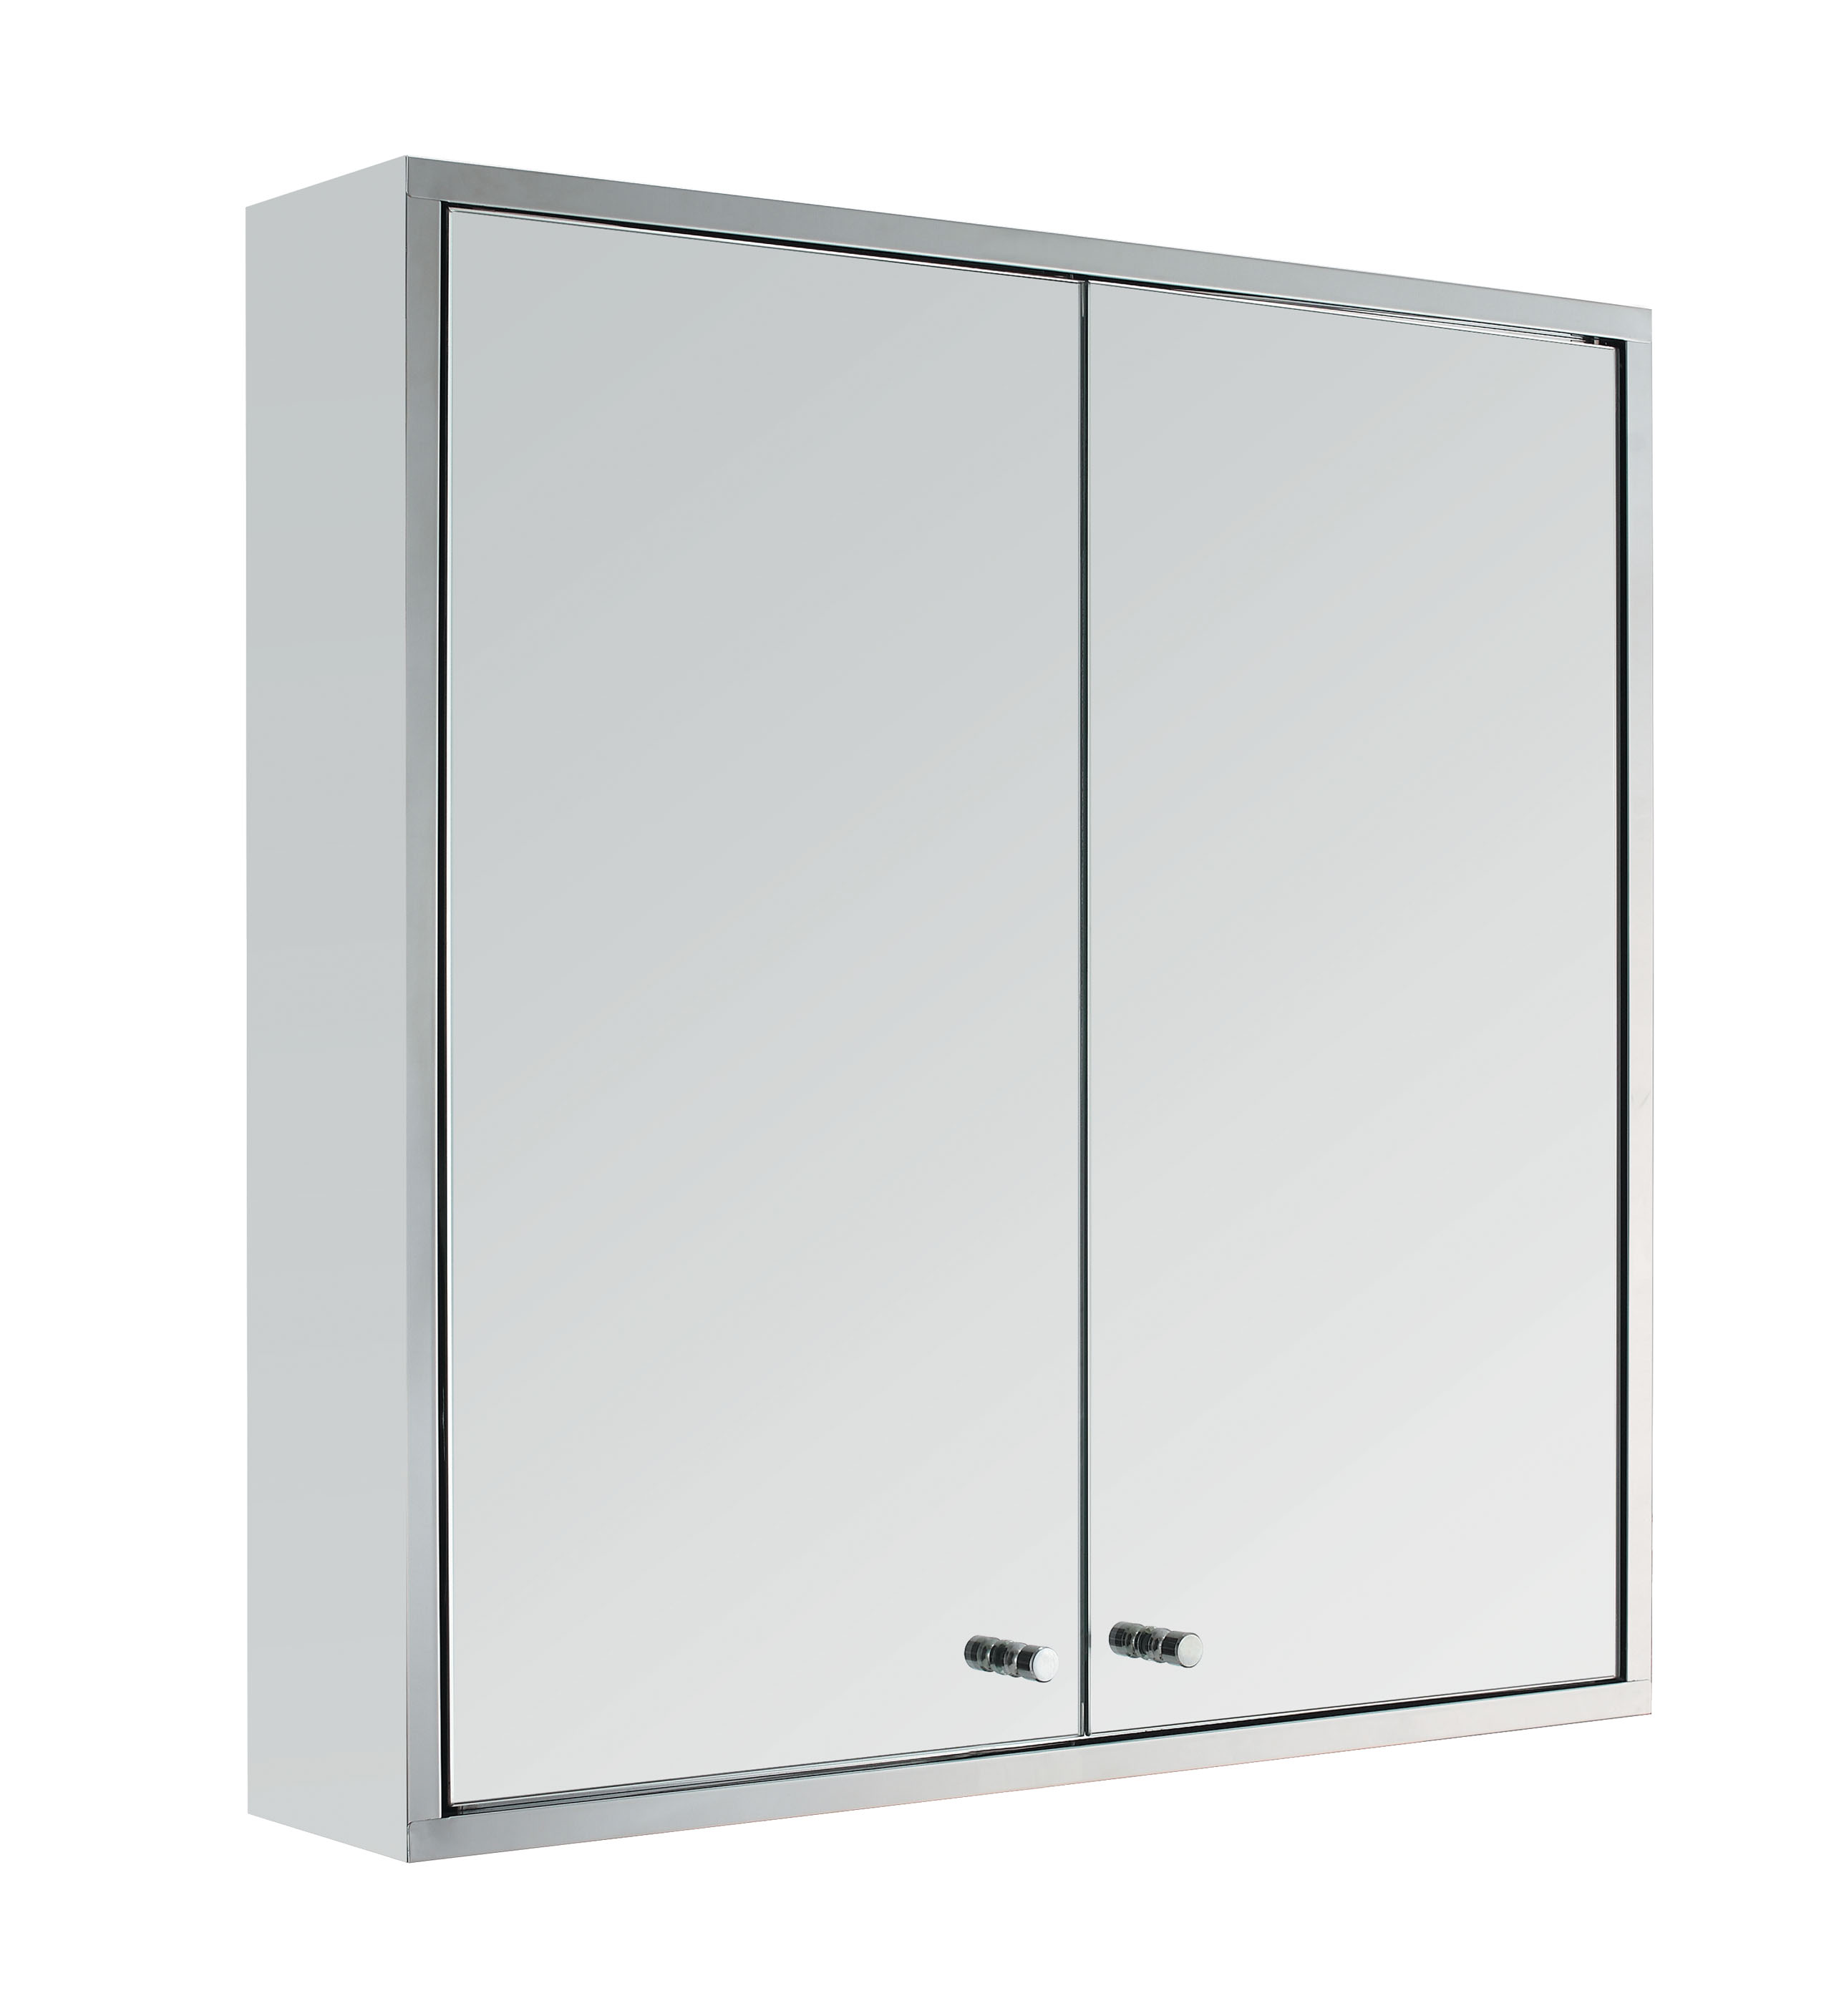 details about stainless steel double door wall mount bathroom cabinet